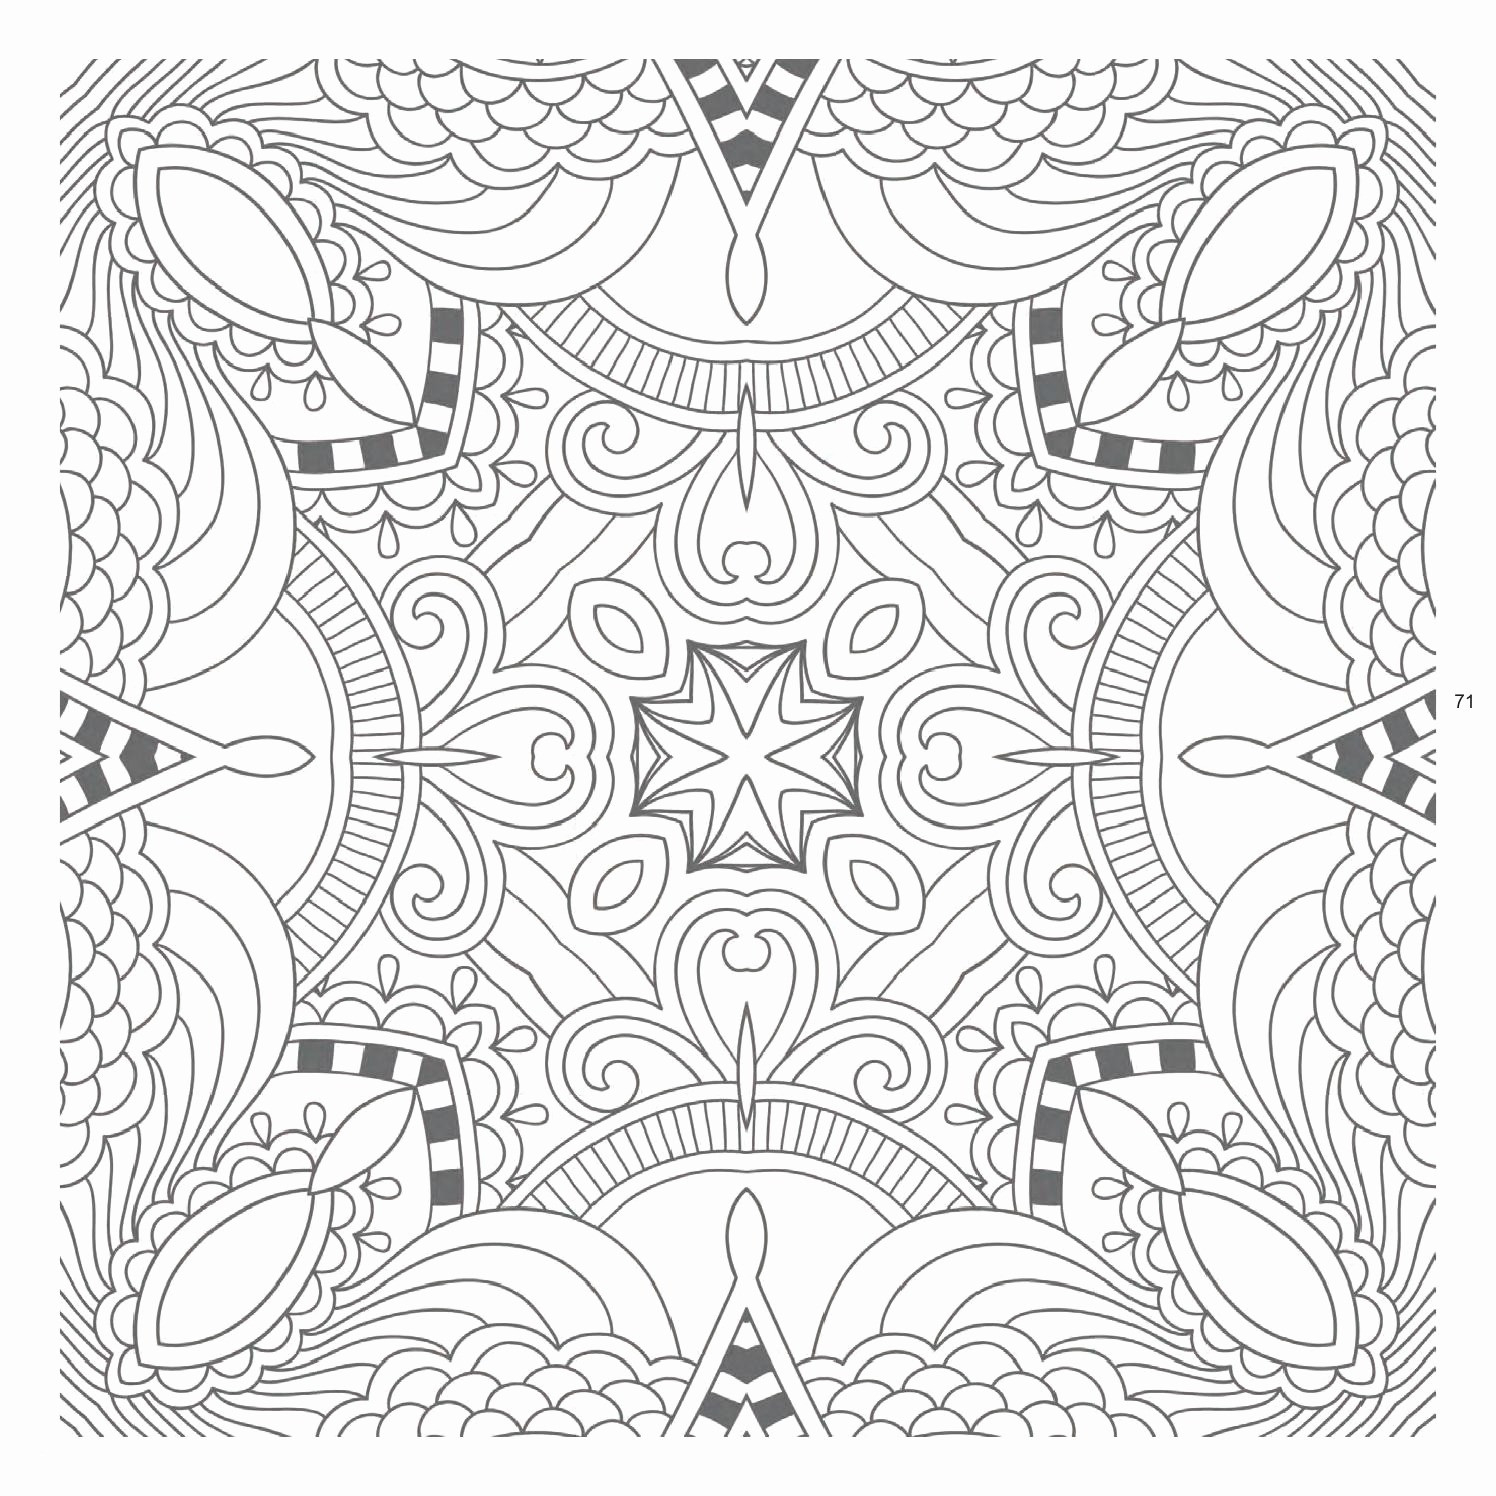 mindfulness coloring pages Collection-Anxiety Coloring Pages Best Mindfulness Coloring Pages New Media Cache Ec0 Pinimg originals 2b 4-s